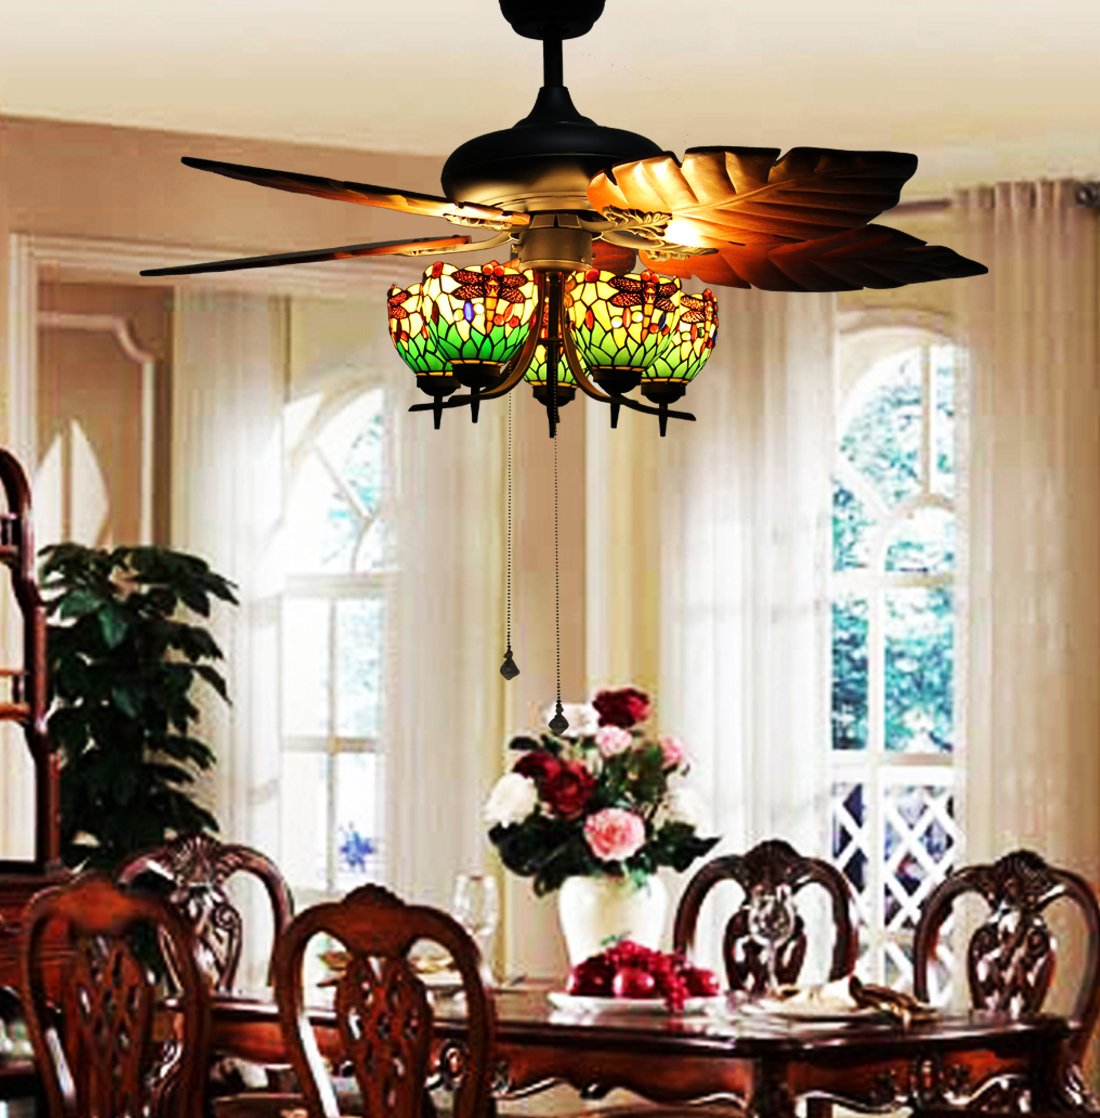 Makenier Vintage Tiffany Style Stained Glass 5 Light Dragonfly Uplight Lampshade Ceiling Fan Kit With Banana Leaf Shaped Blades